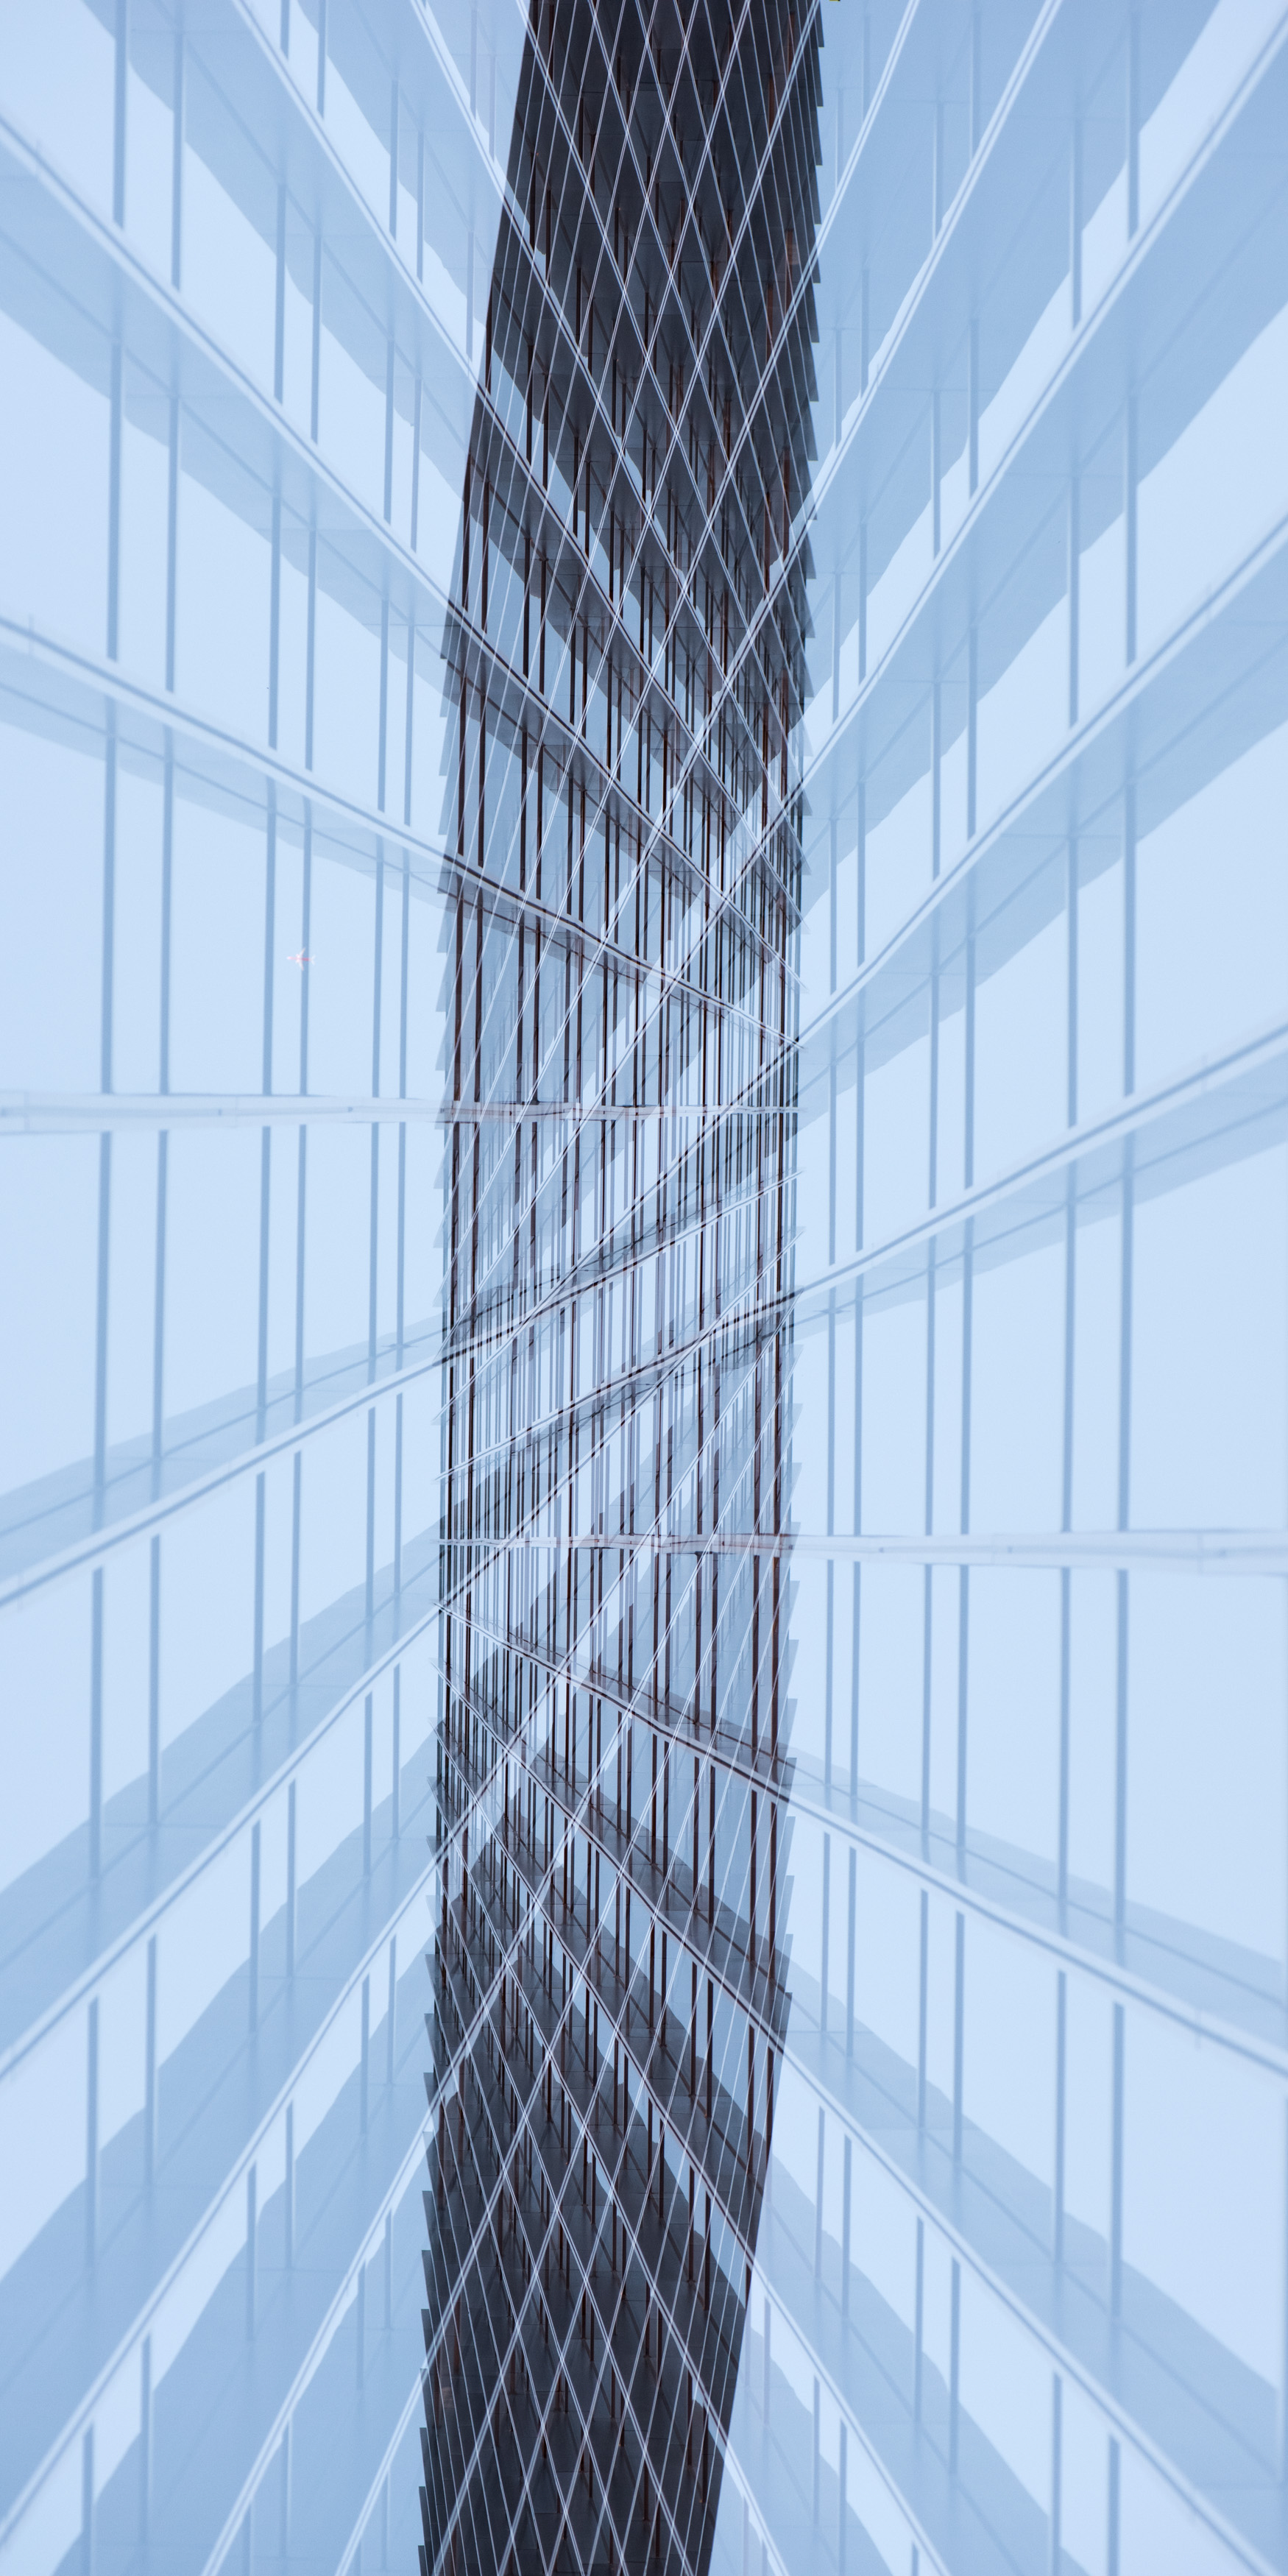 Intersecting Planes V,  2016 Archival pigment print 20x40 inches